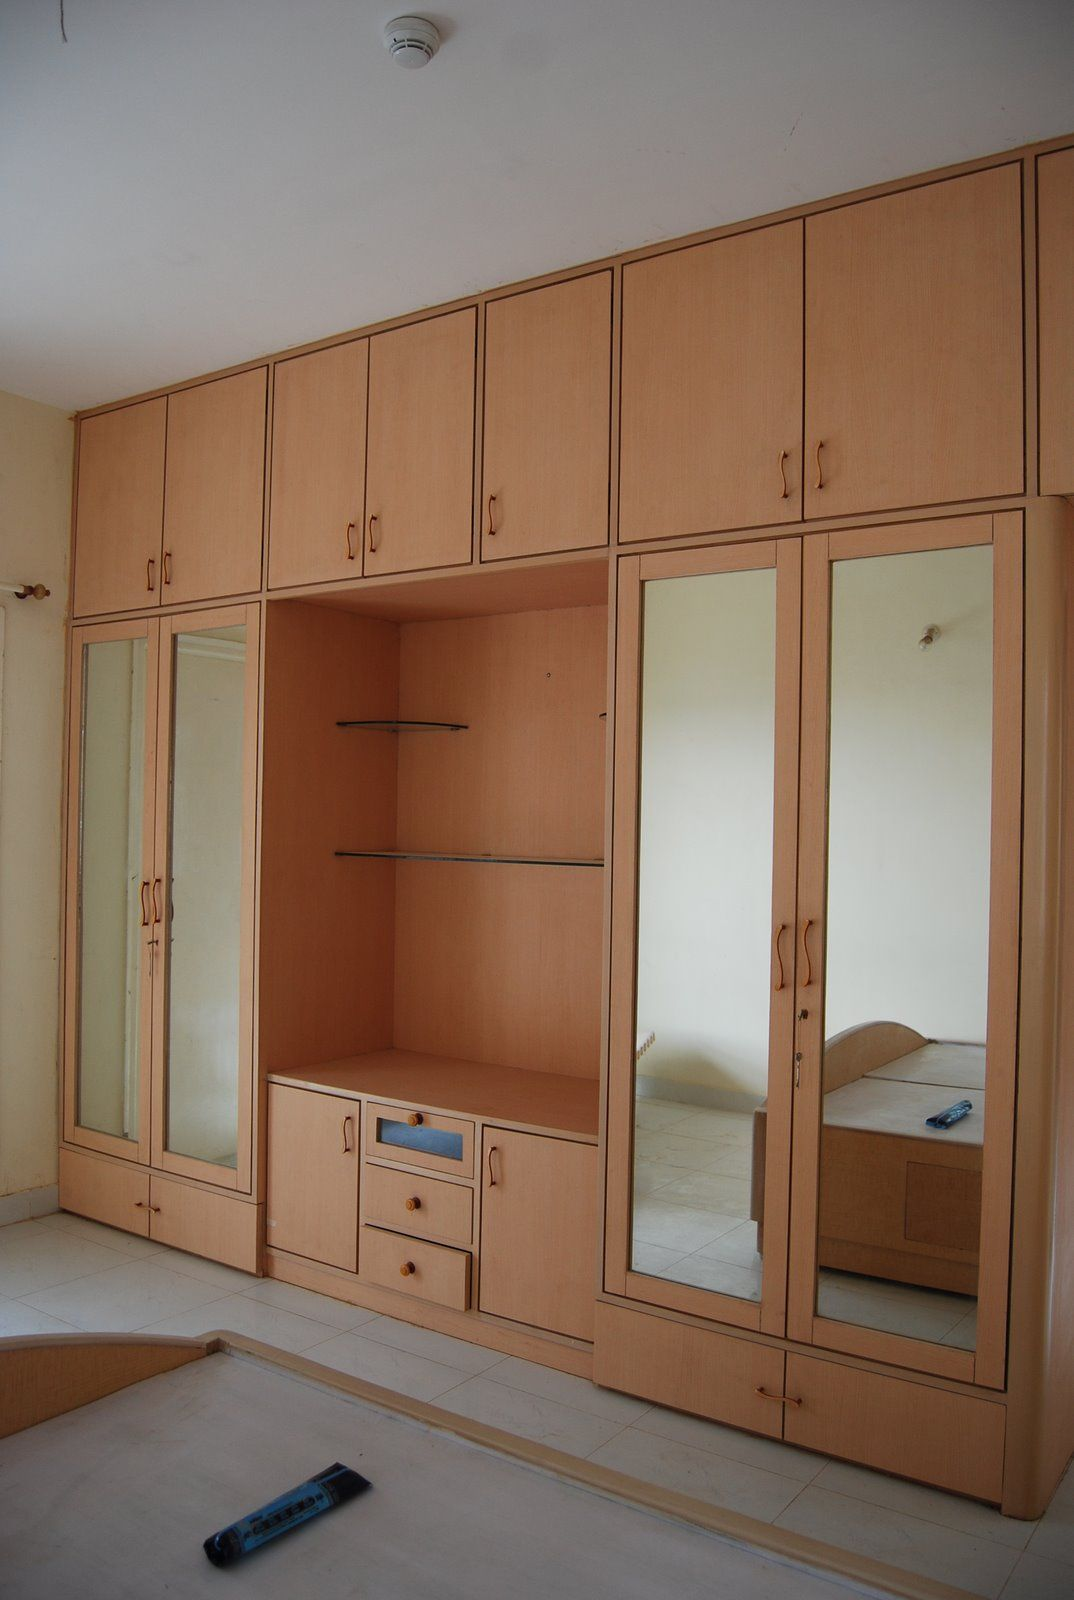 Room Cabinet Design Bedroom Wardrobe Design Playwood Wadrobe With Cabinets Also